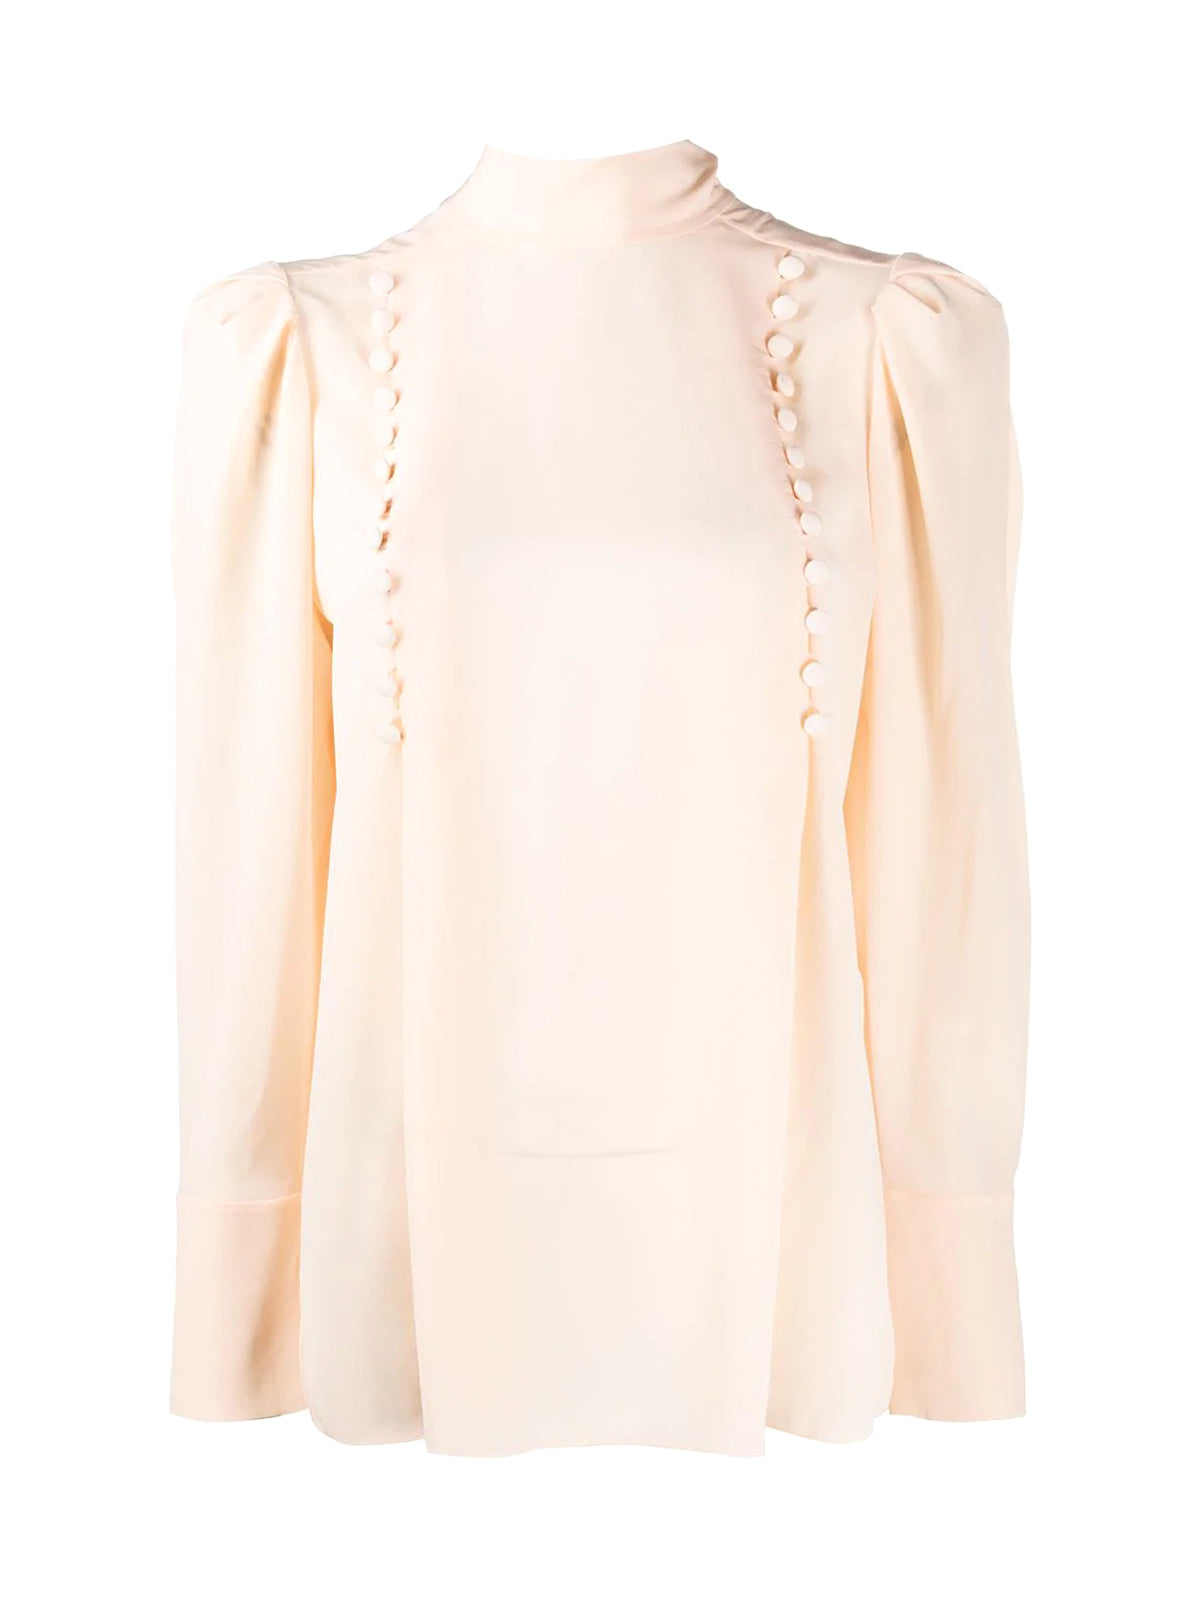 decorative buttoned blouse